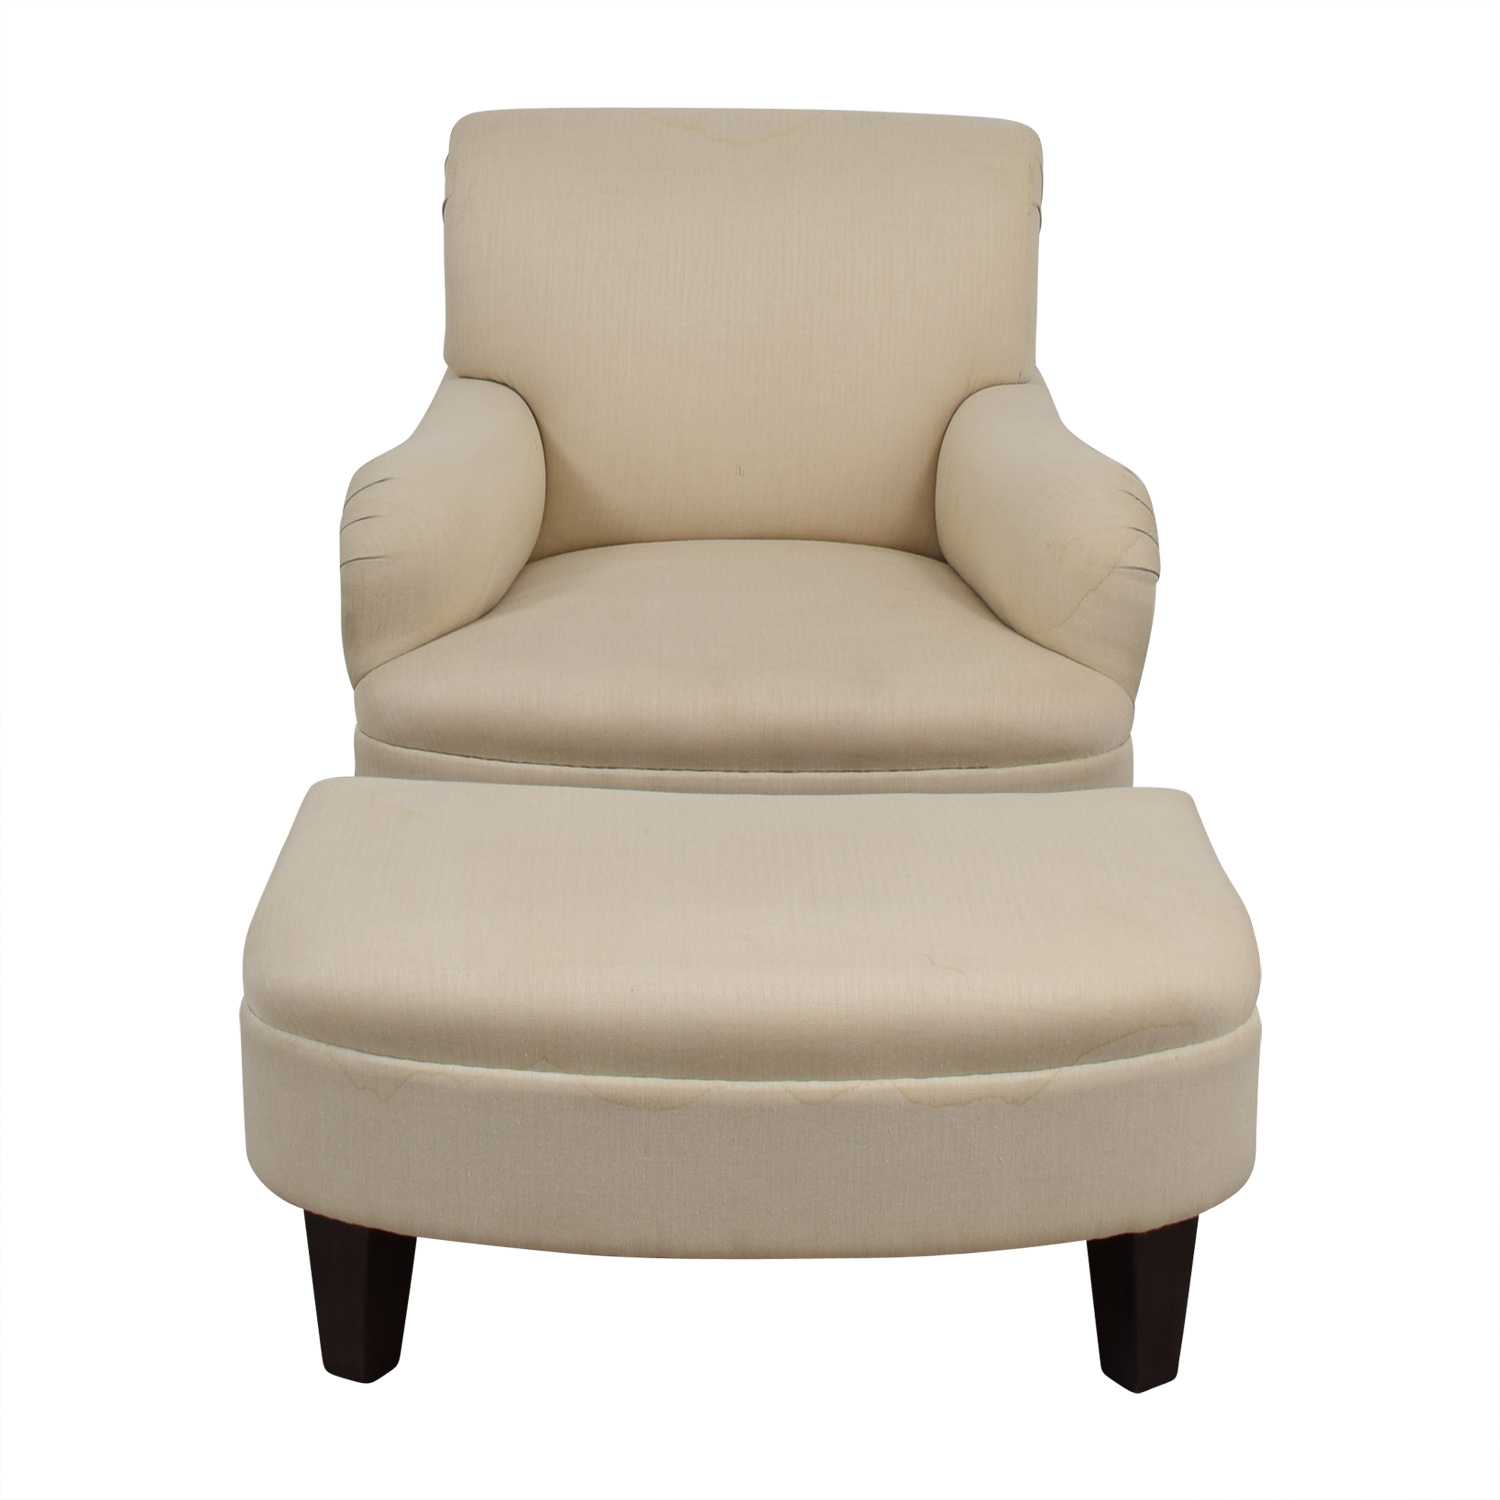 Furniture Masters Furniture Masters Beige Herringbone Accent Chair with Ottoman coupon